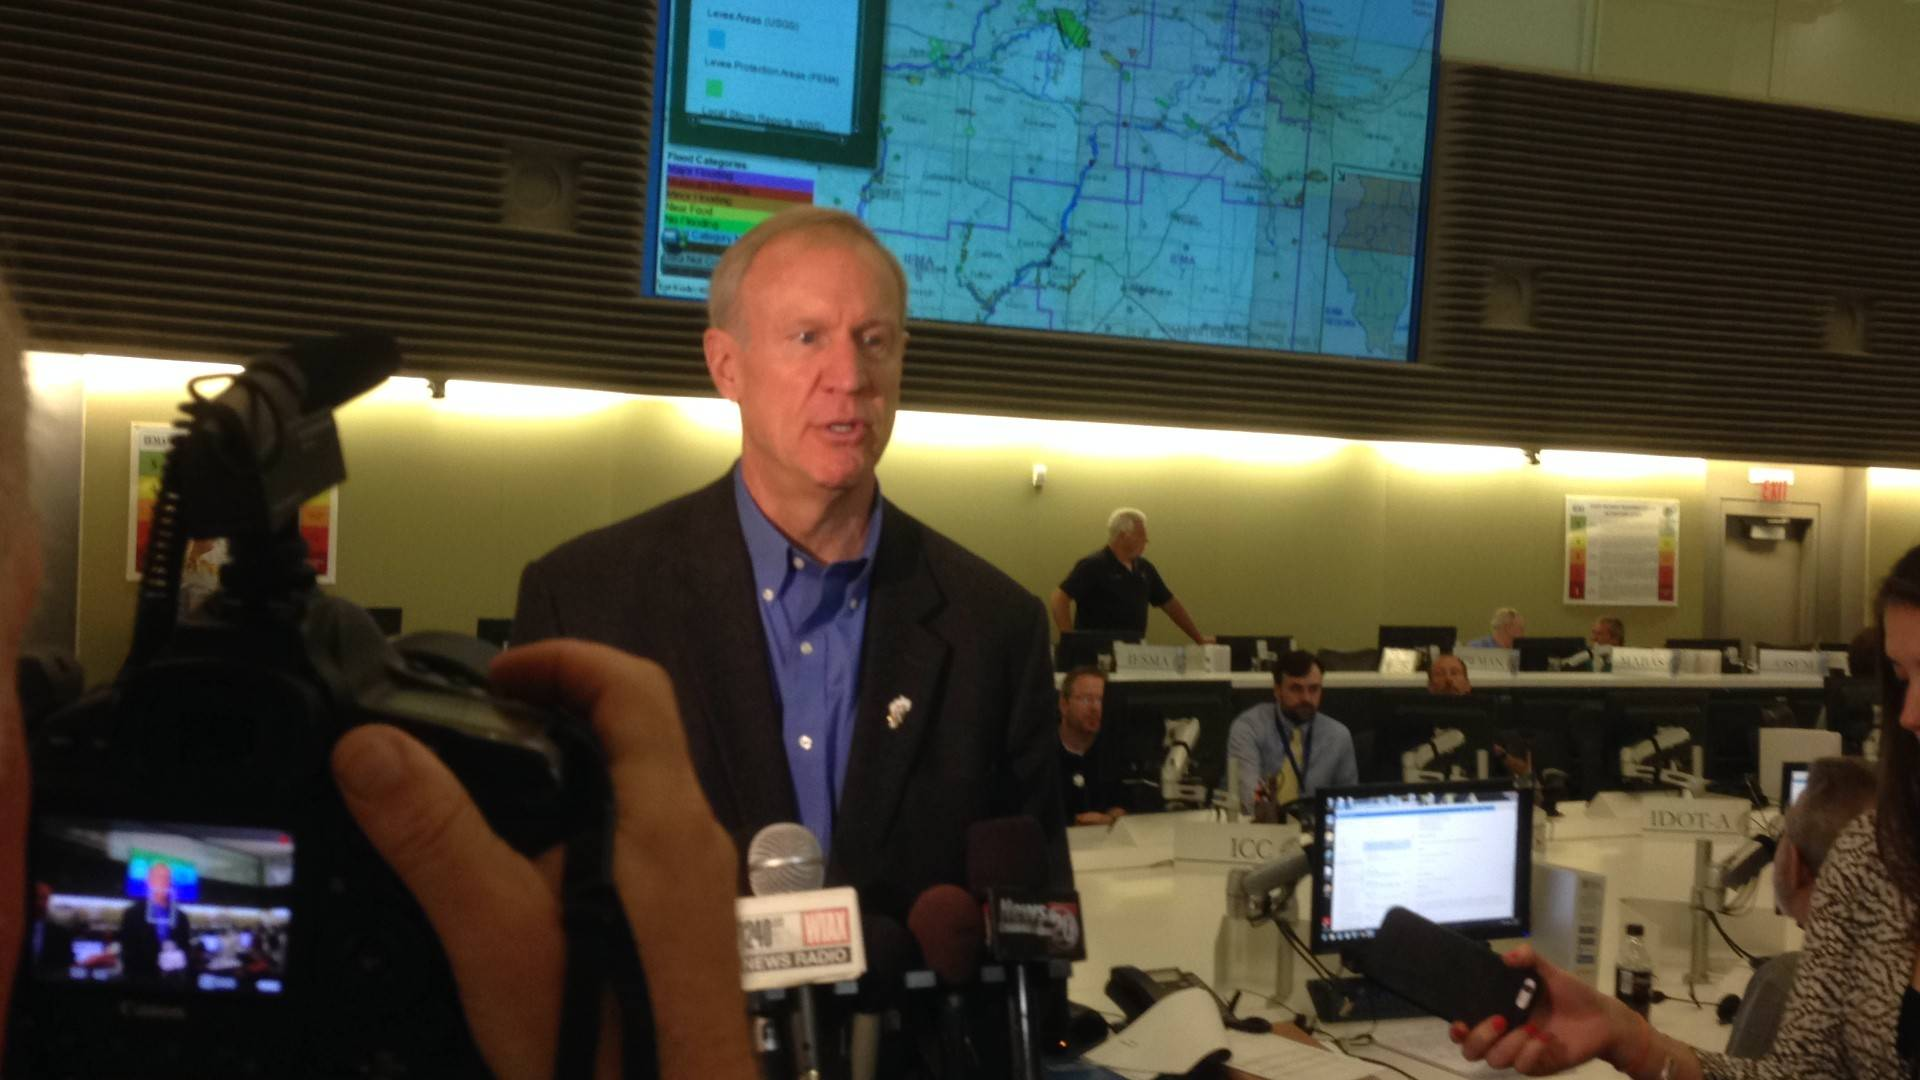 New Rauner pension plan cuts benefits for teachers, cops, firefighters